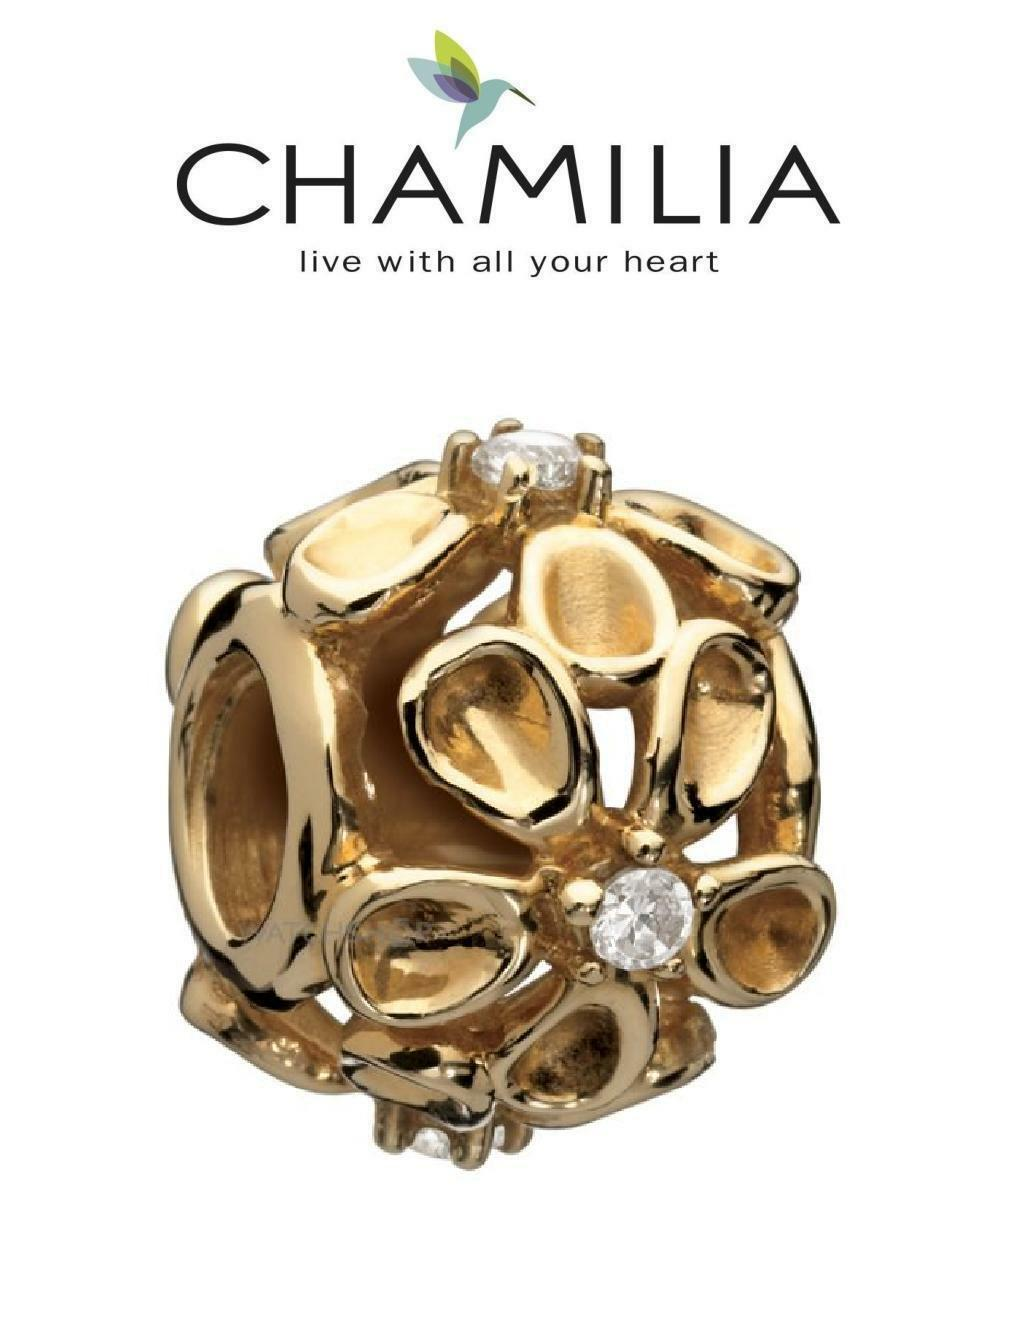 Boxed Genuine CHAMILIA solid 14k gold DAZZLING DAISY flowers charm bead RRP